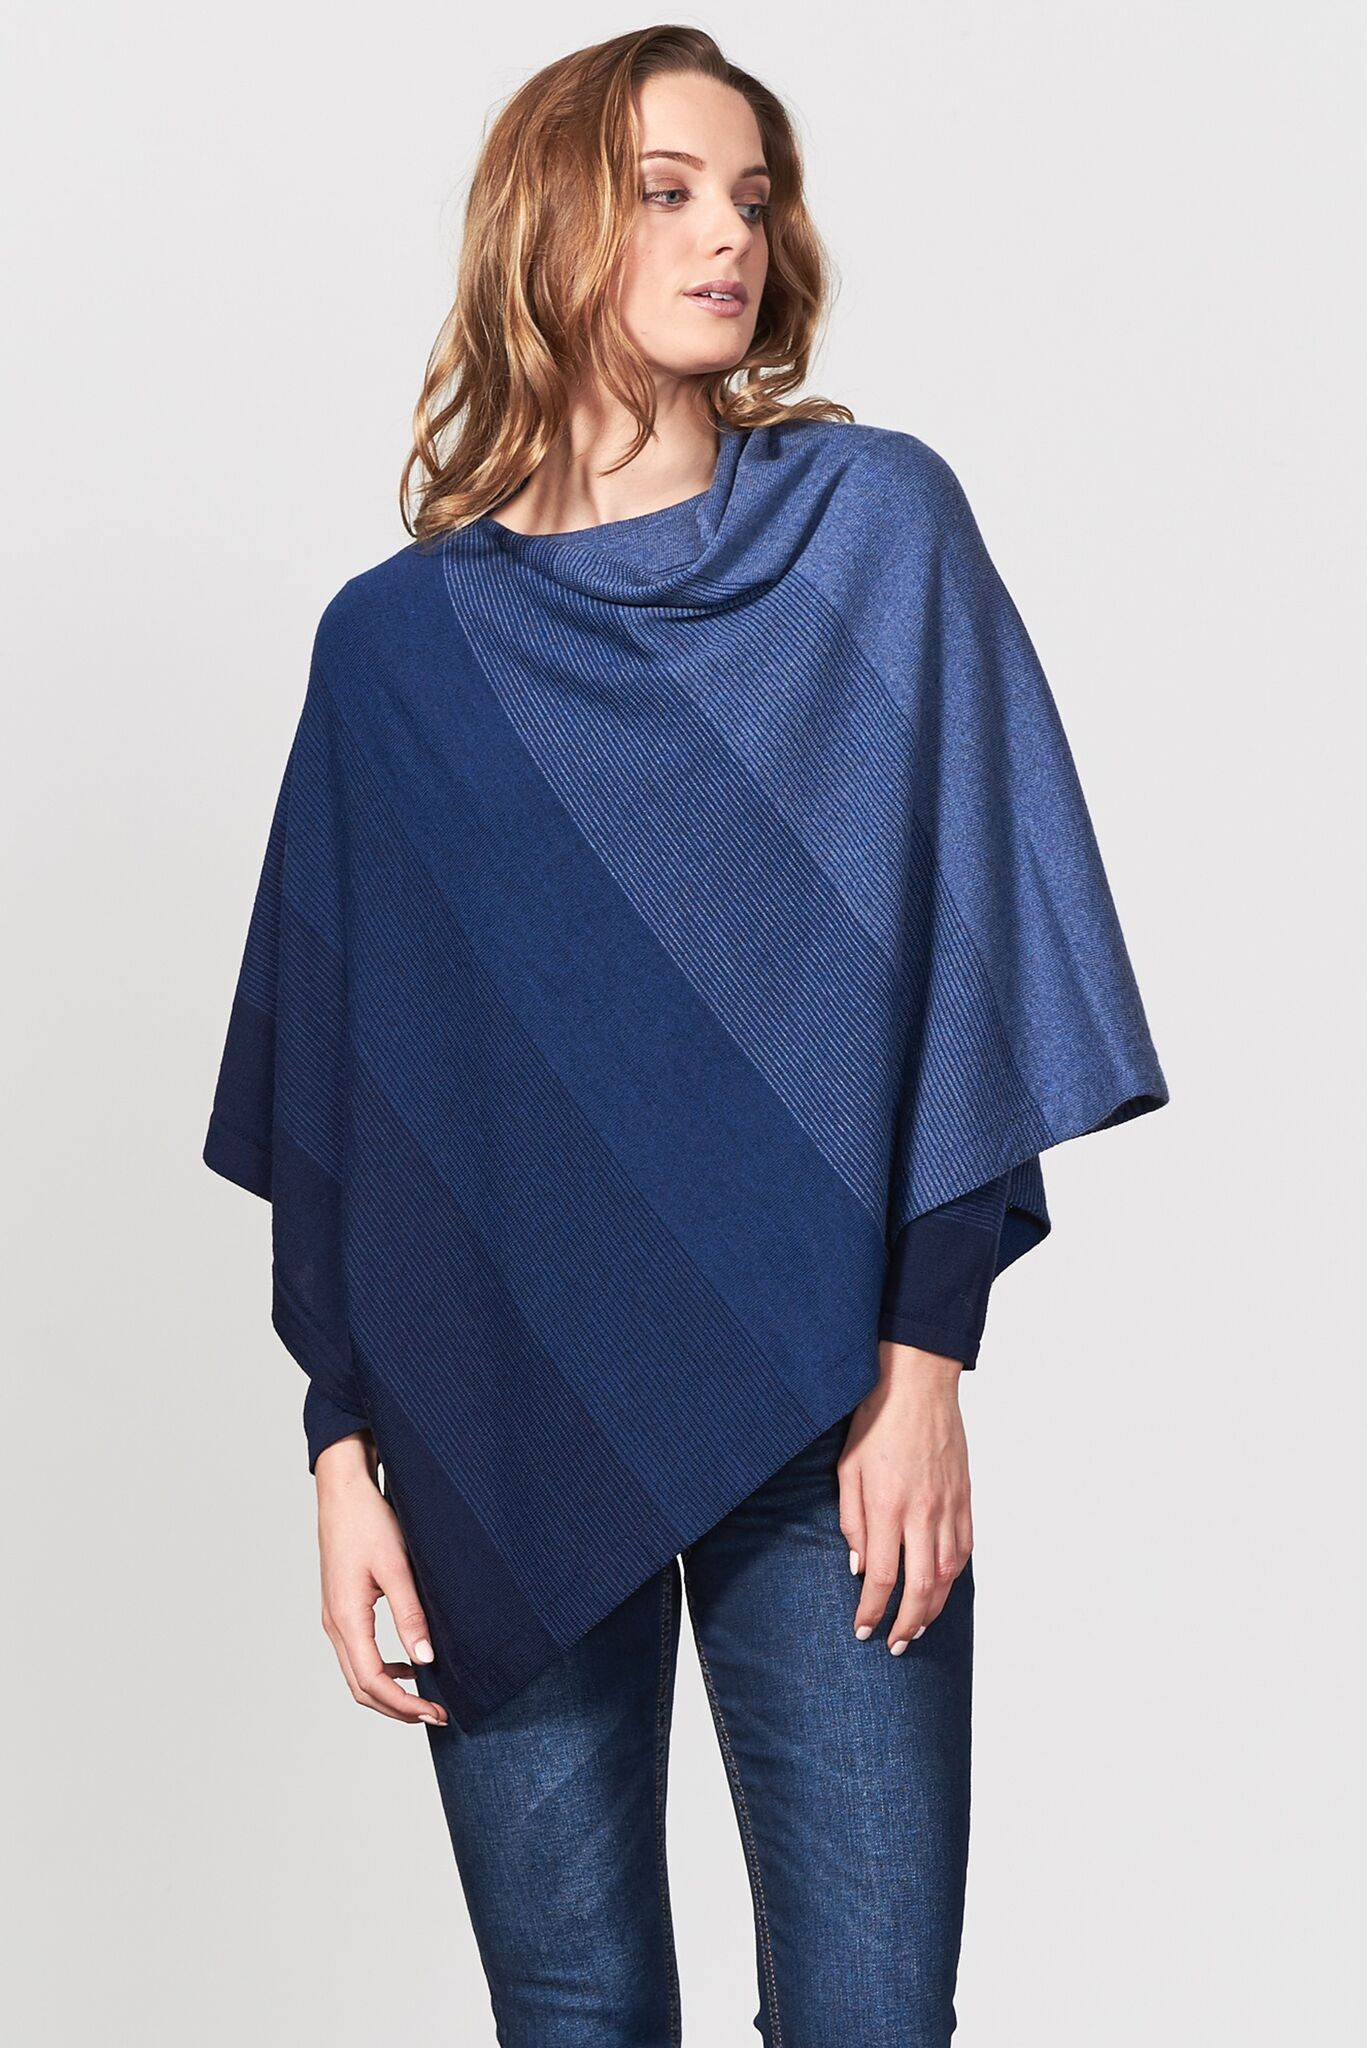 8481a66f4 Graduated Stripe Poncho in Navy, New Zealand made Merino Wool knitwear ...